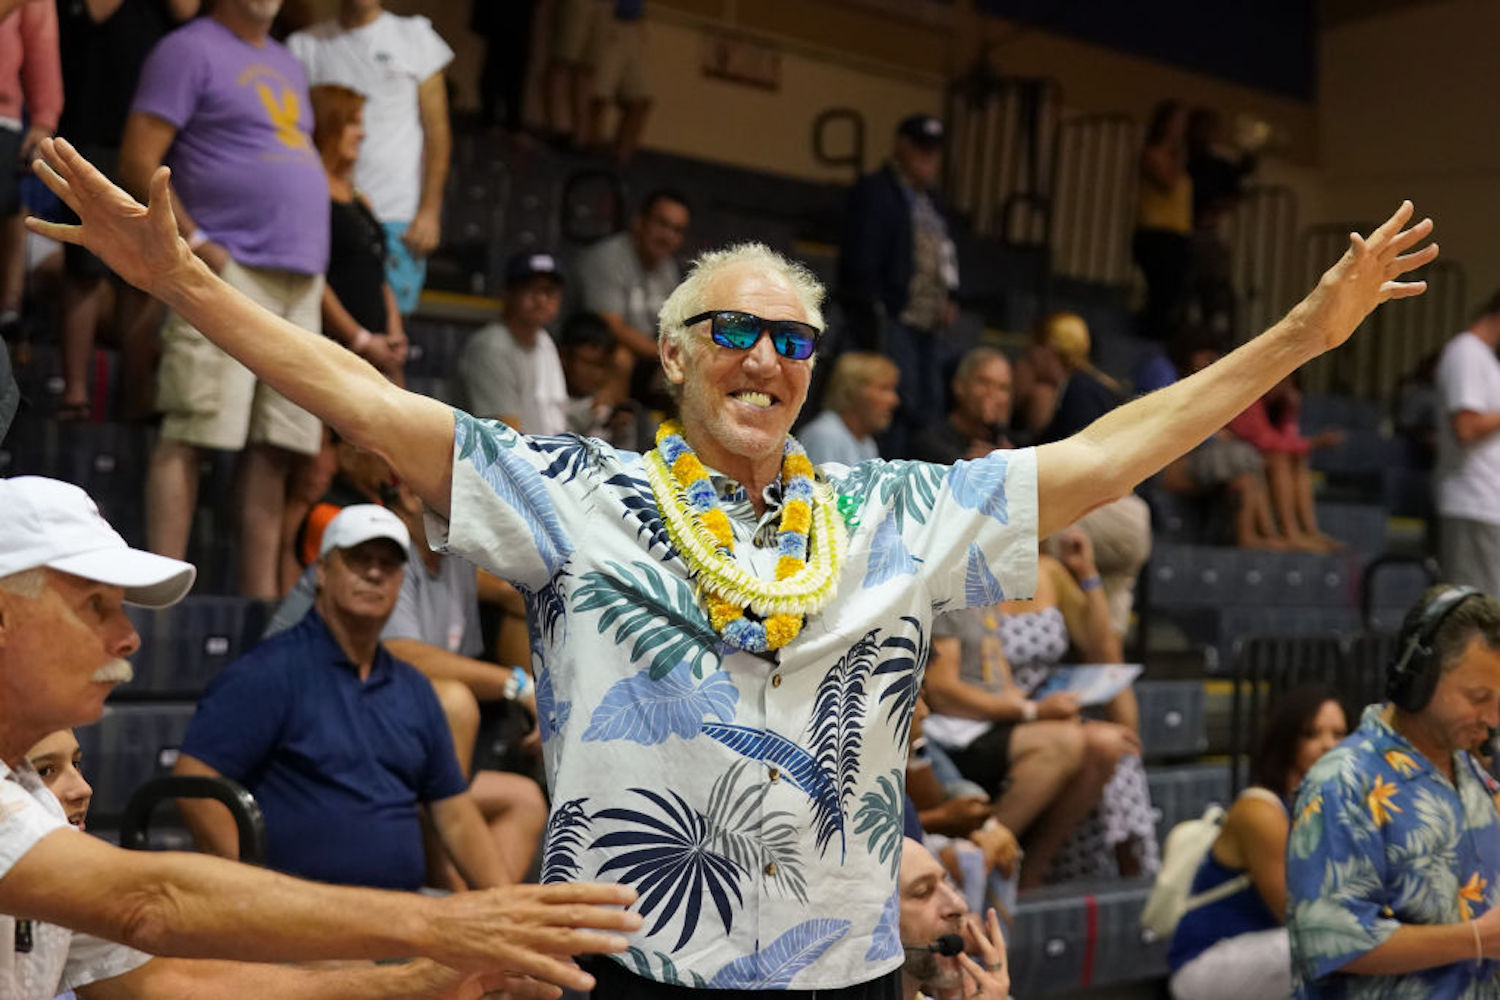 Bill Walton Once Claimed He Found a Pterodactyl in His Closet and Rode It to the Top of a Mountain